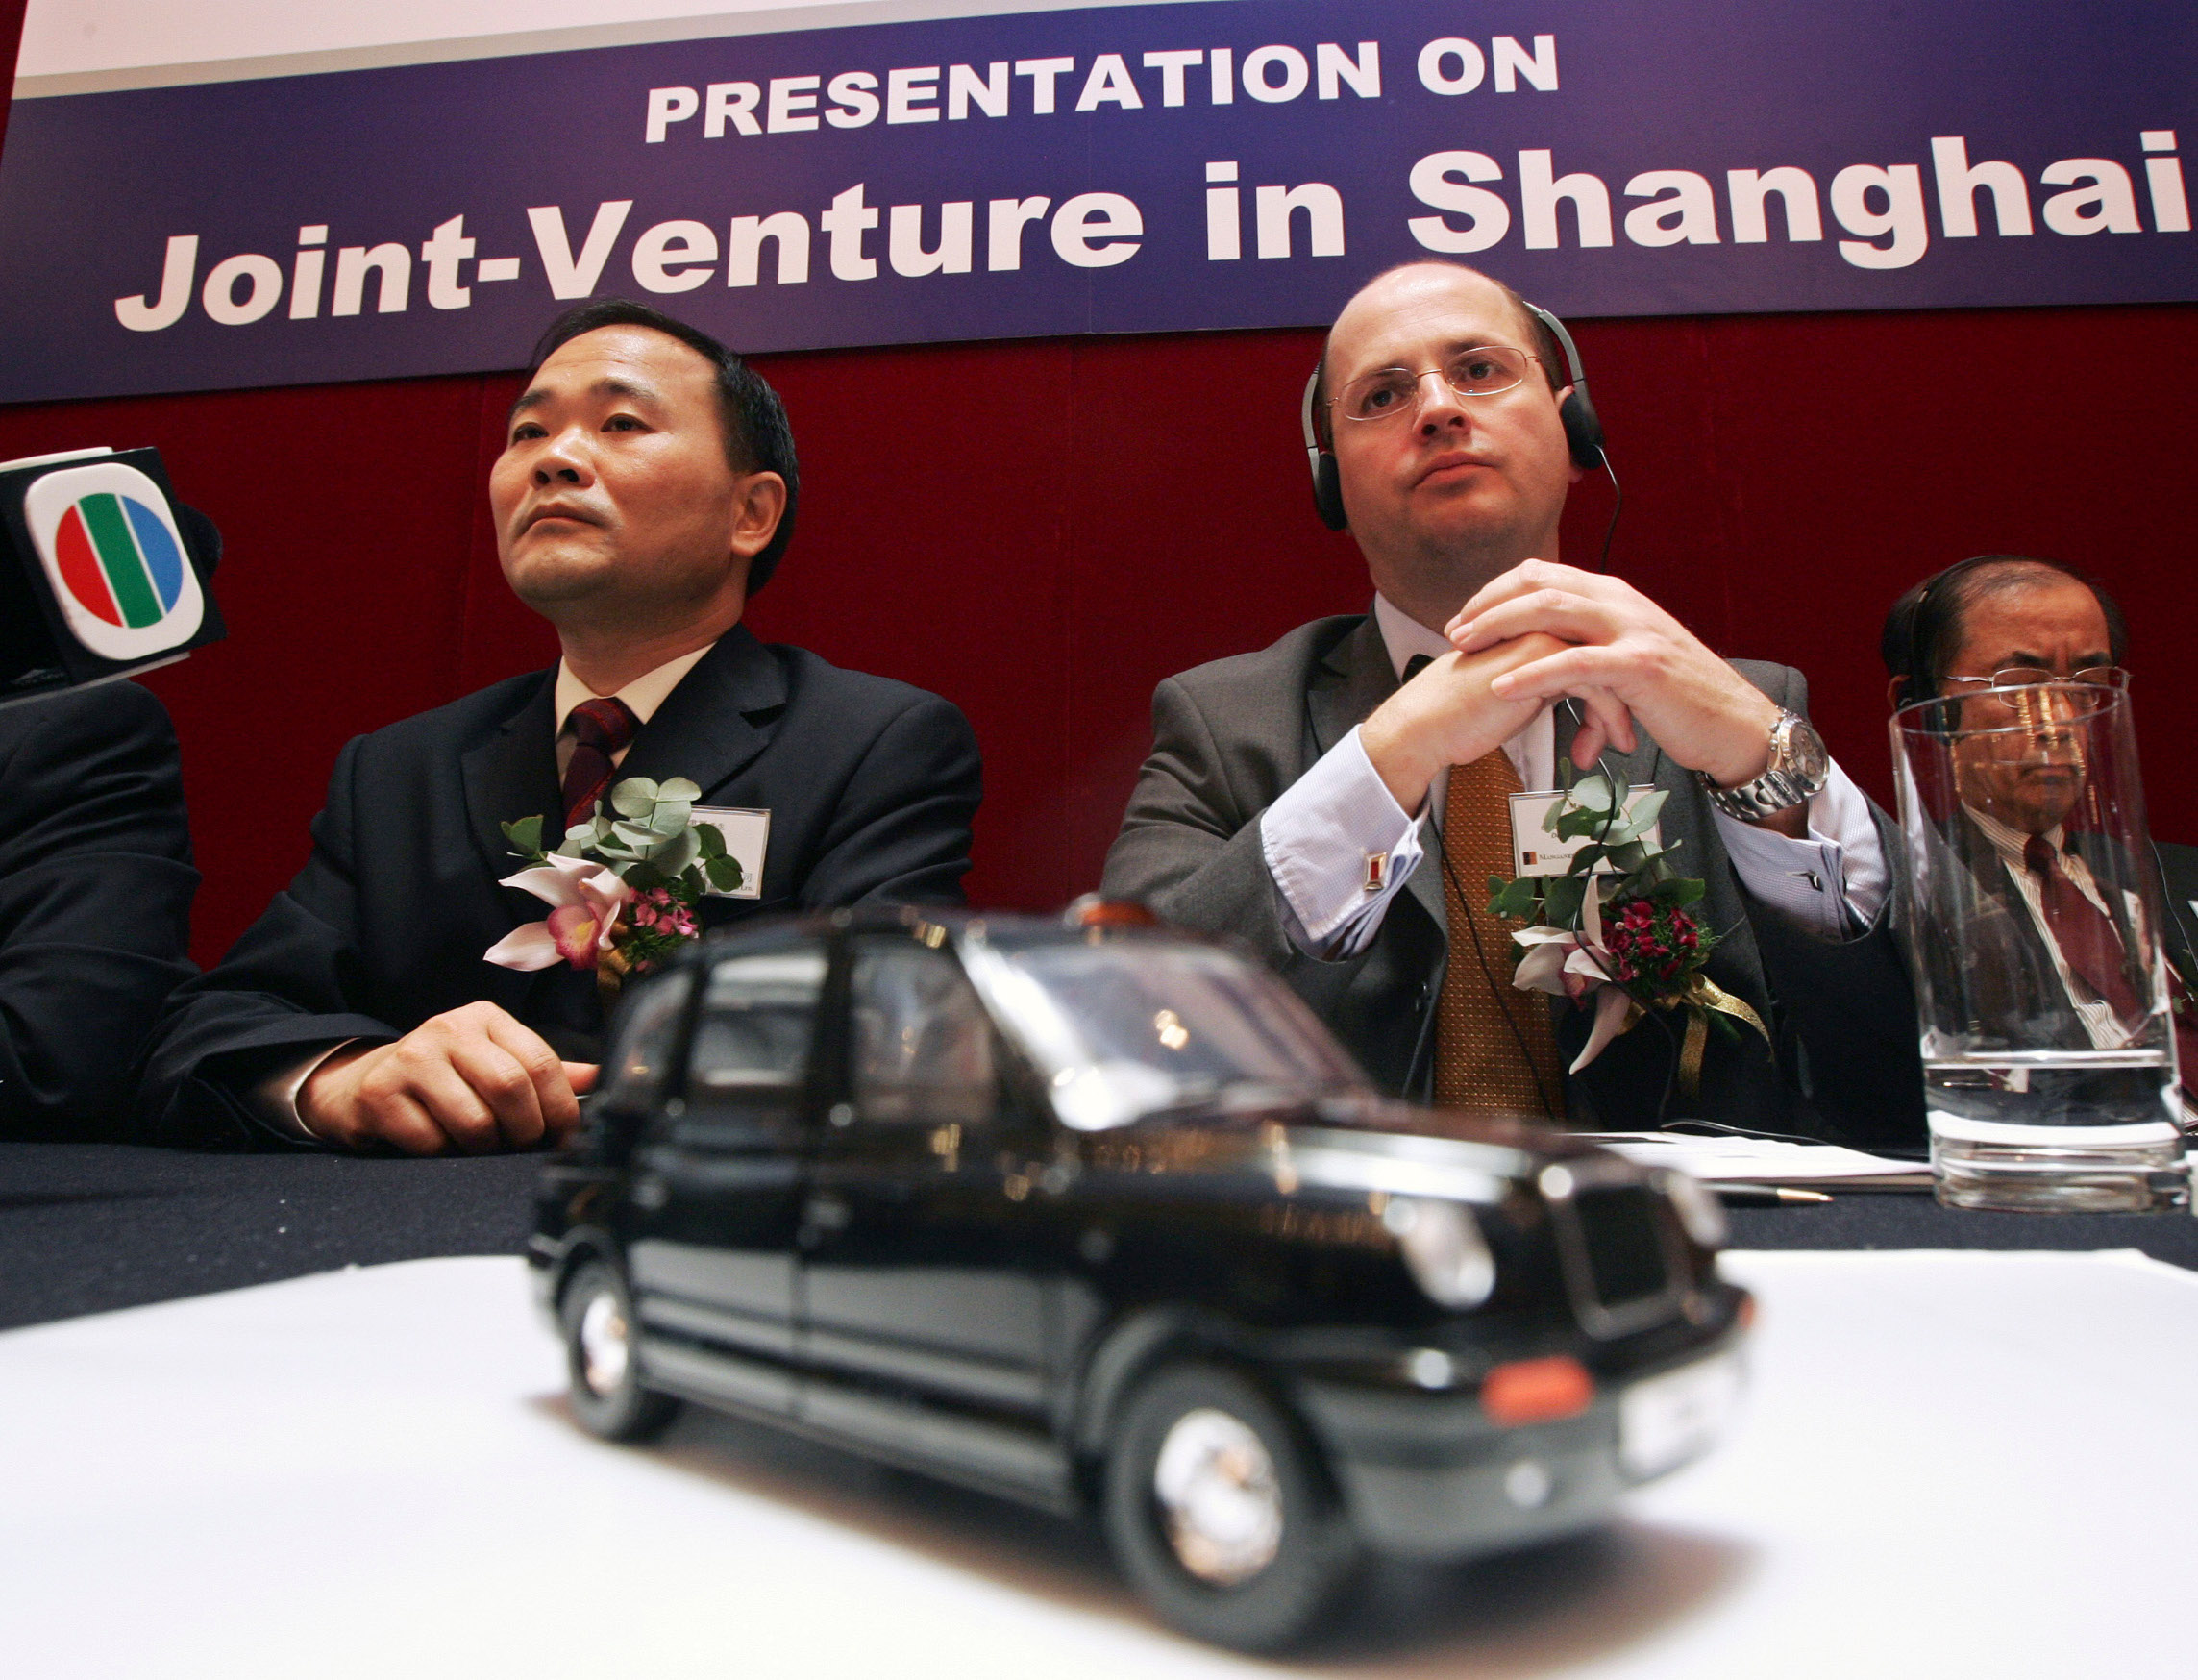 Li Shu Fu (L), Chairman of Geely Automobile Holdings Ltd., and Mark Fryer, Group Finance and Business Development Director of Manganese Bronze Holdings Plc., attend a signing ceremony as they establish a joint venture company to produce London taxis in Hong Kong November 9, 2006. REUTERS/Paul Yeung  (CHINA) - GM1DTXEDLZAA